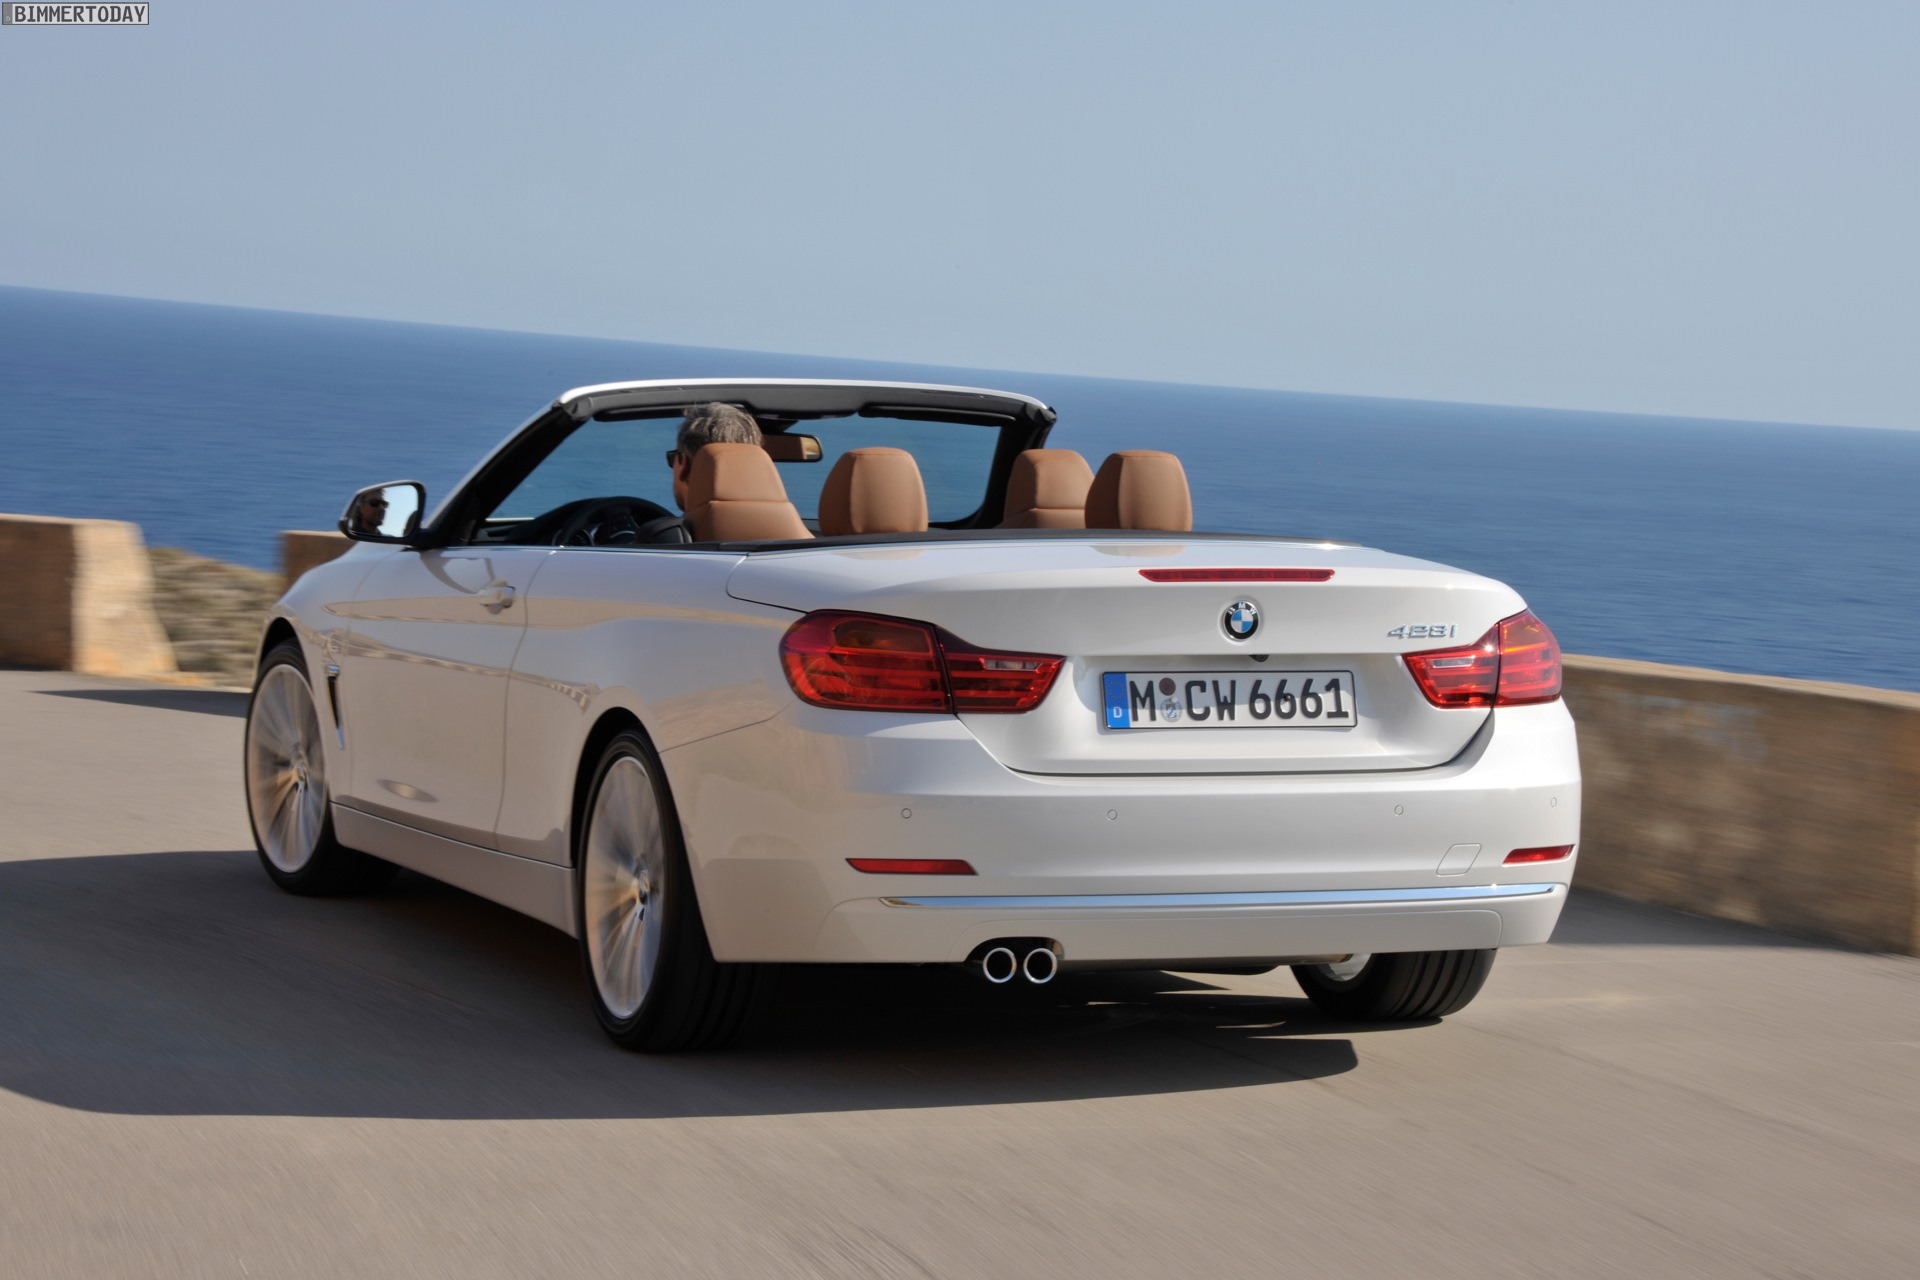 bmw 4er cabrio preis steigt moderat an 420d f33 ab 46. Black Bedroom Furniture Sets. Home Design Ideas